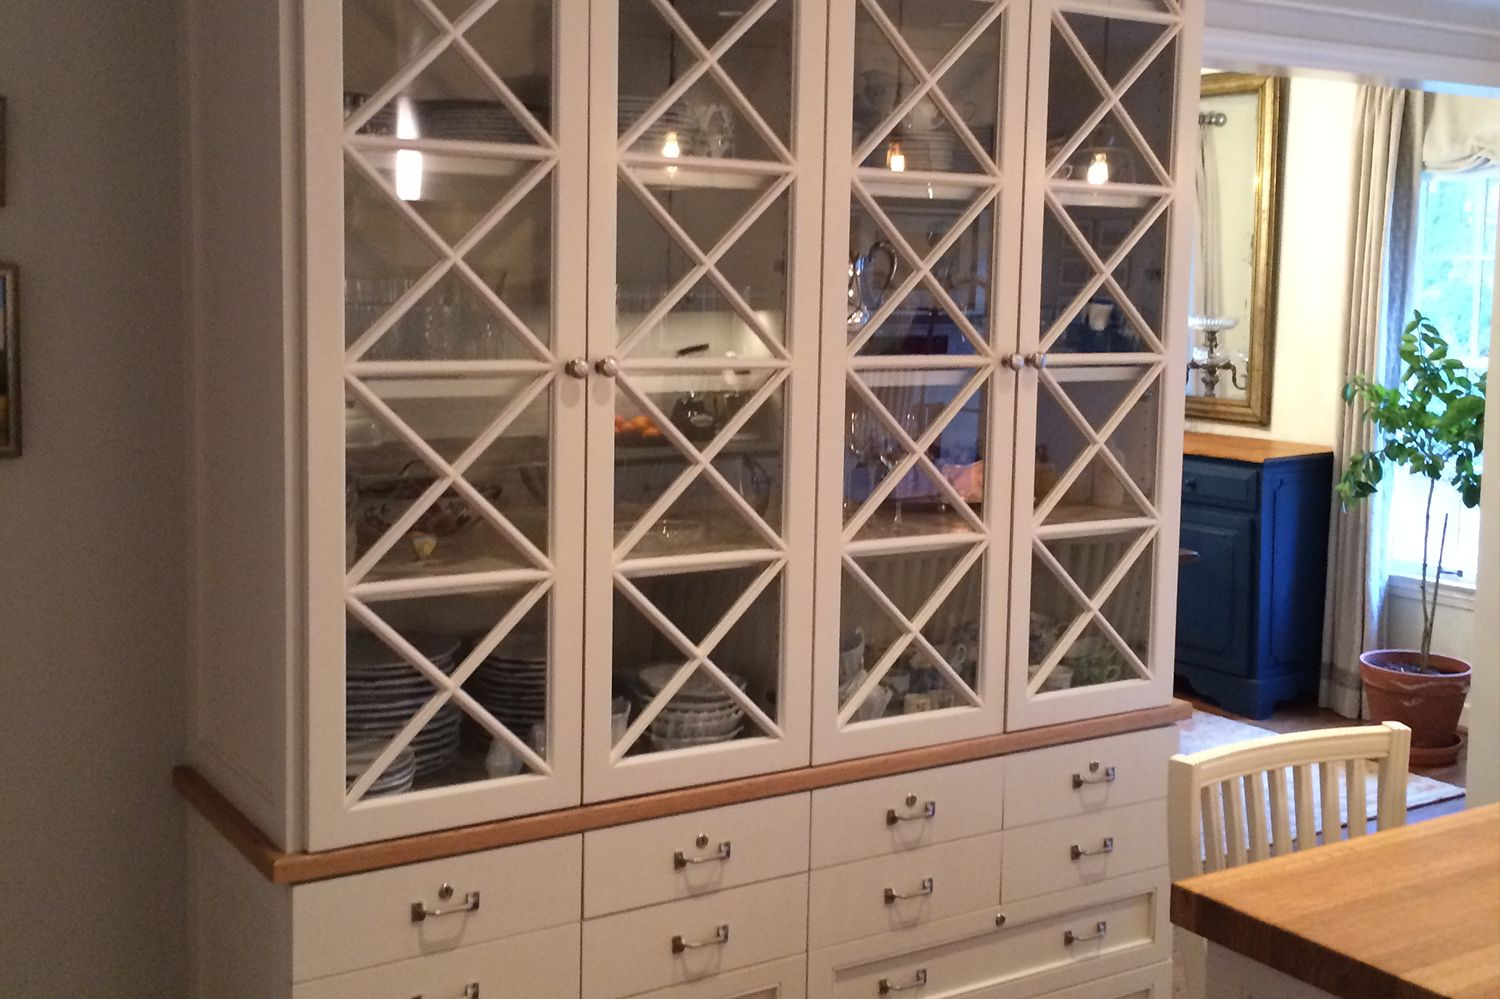 Custome made kitchen cabinet pike road millwork custom cabinets